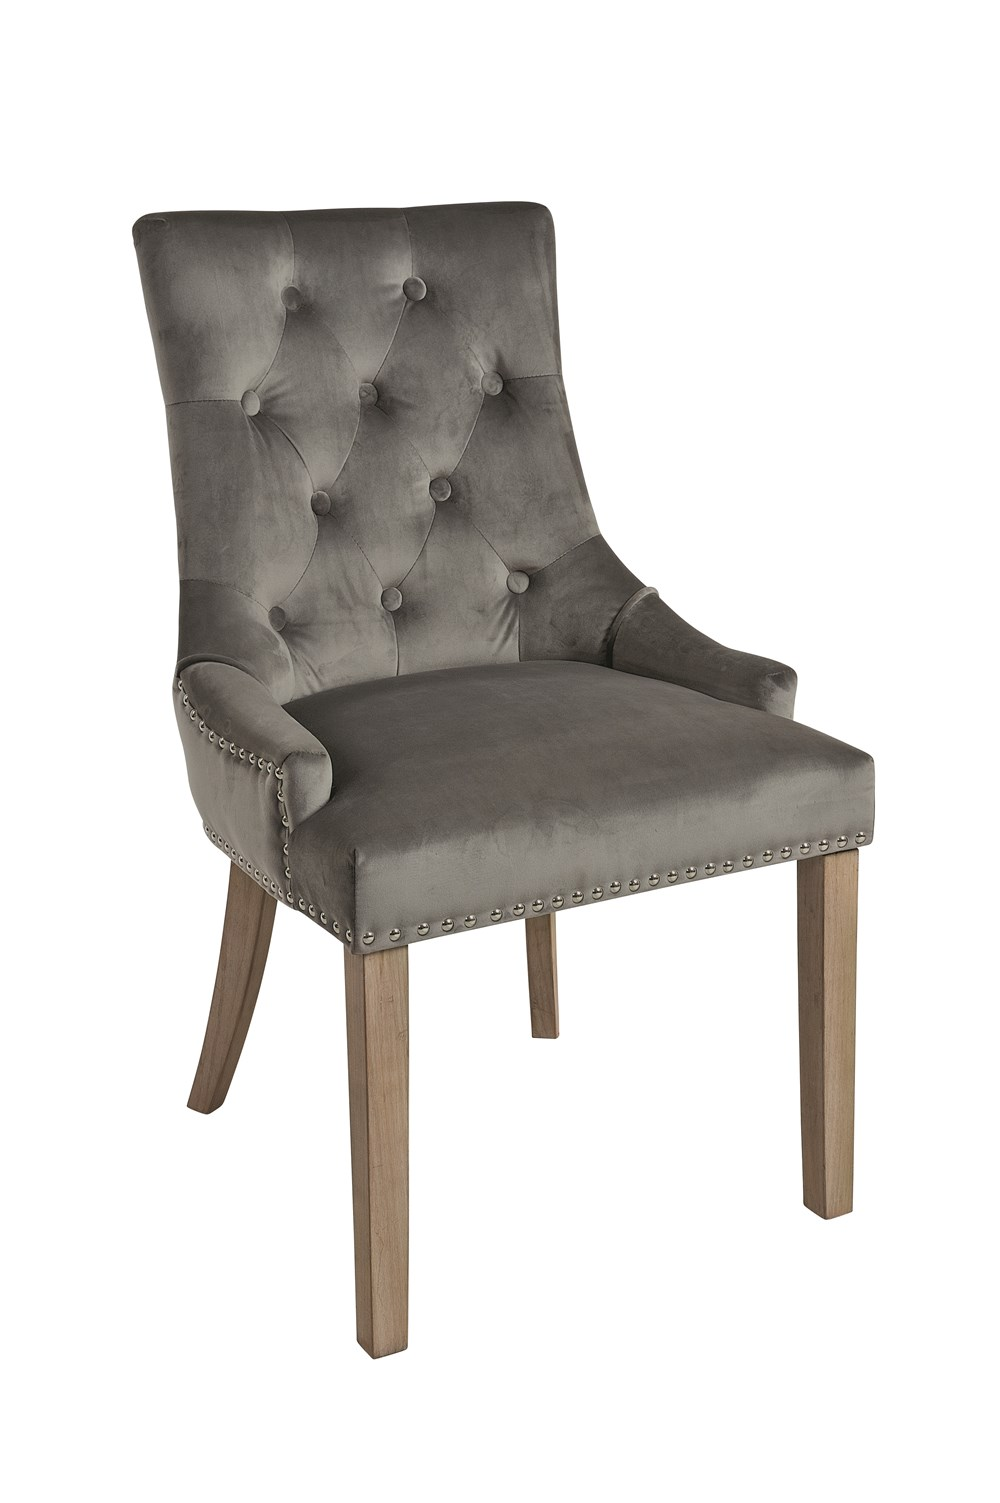 VICKY CHAIR Charcoal Upholstered Chair with Vintage Legs